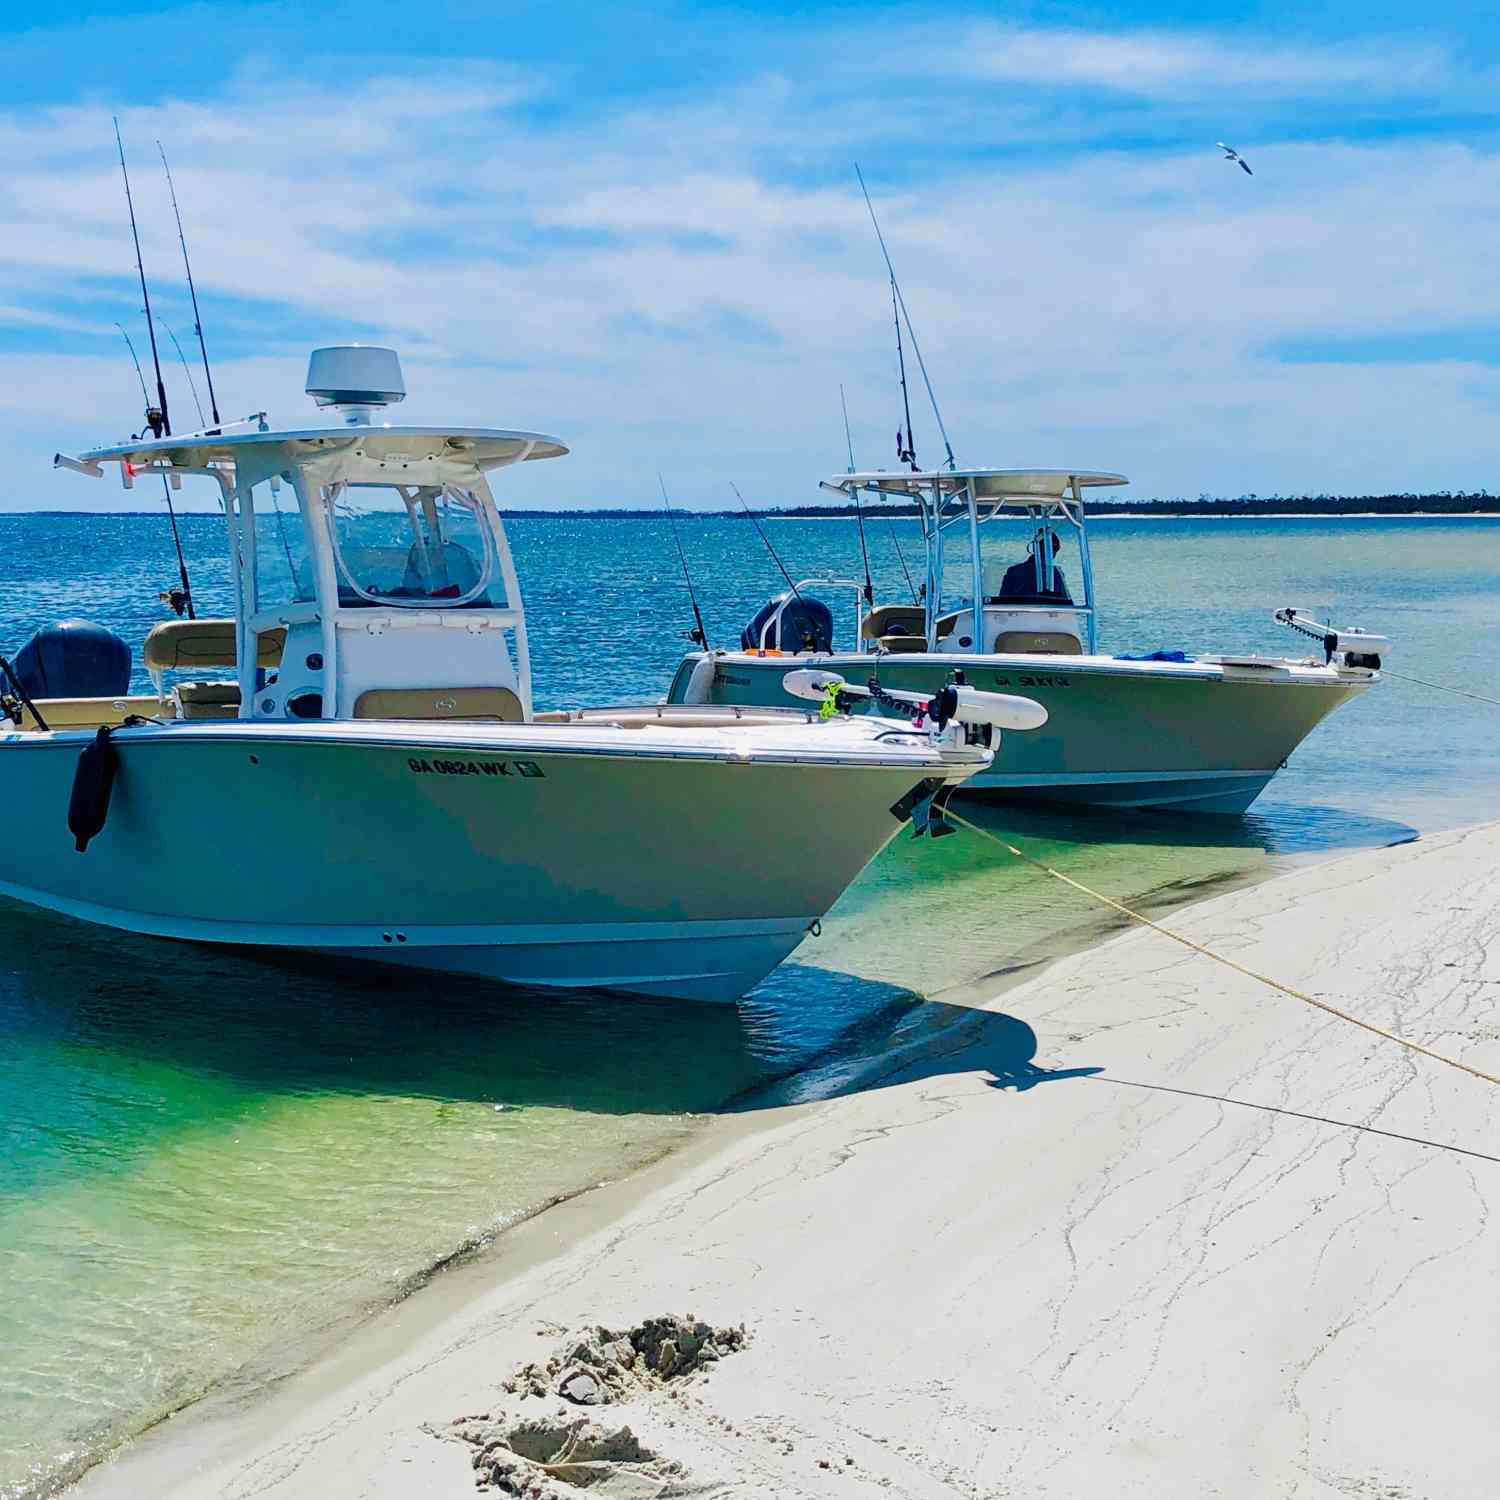 Title: Twins at the sandbar - On board their Sportsman Heritage 231 Center Console - Location: Cape San Blaas.. Participating in the Photo Contest #SportsmanApril2020